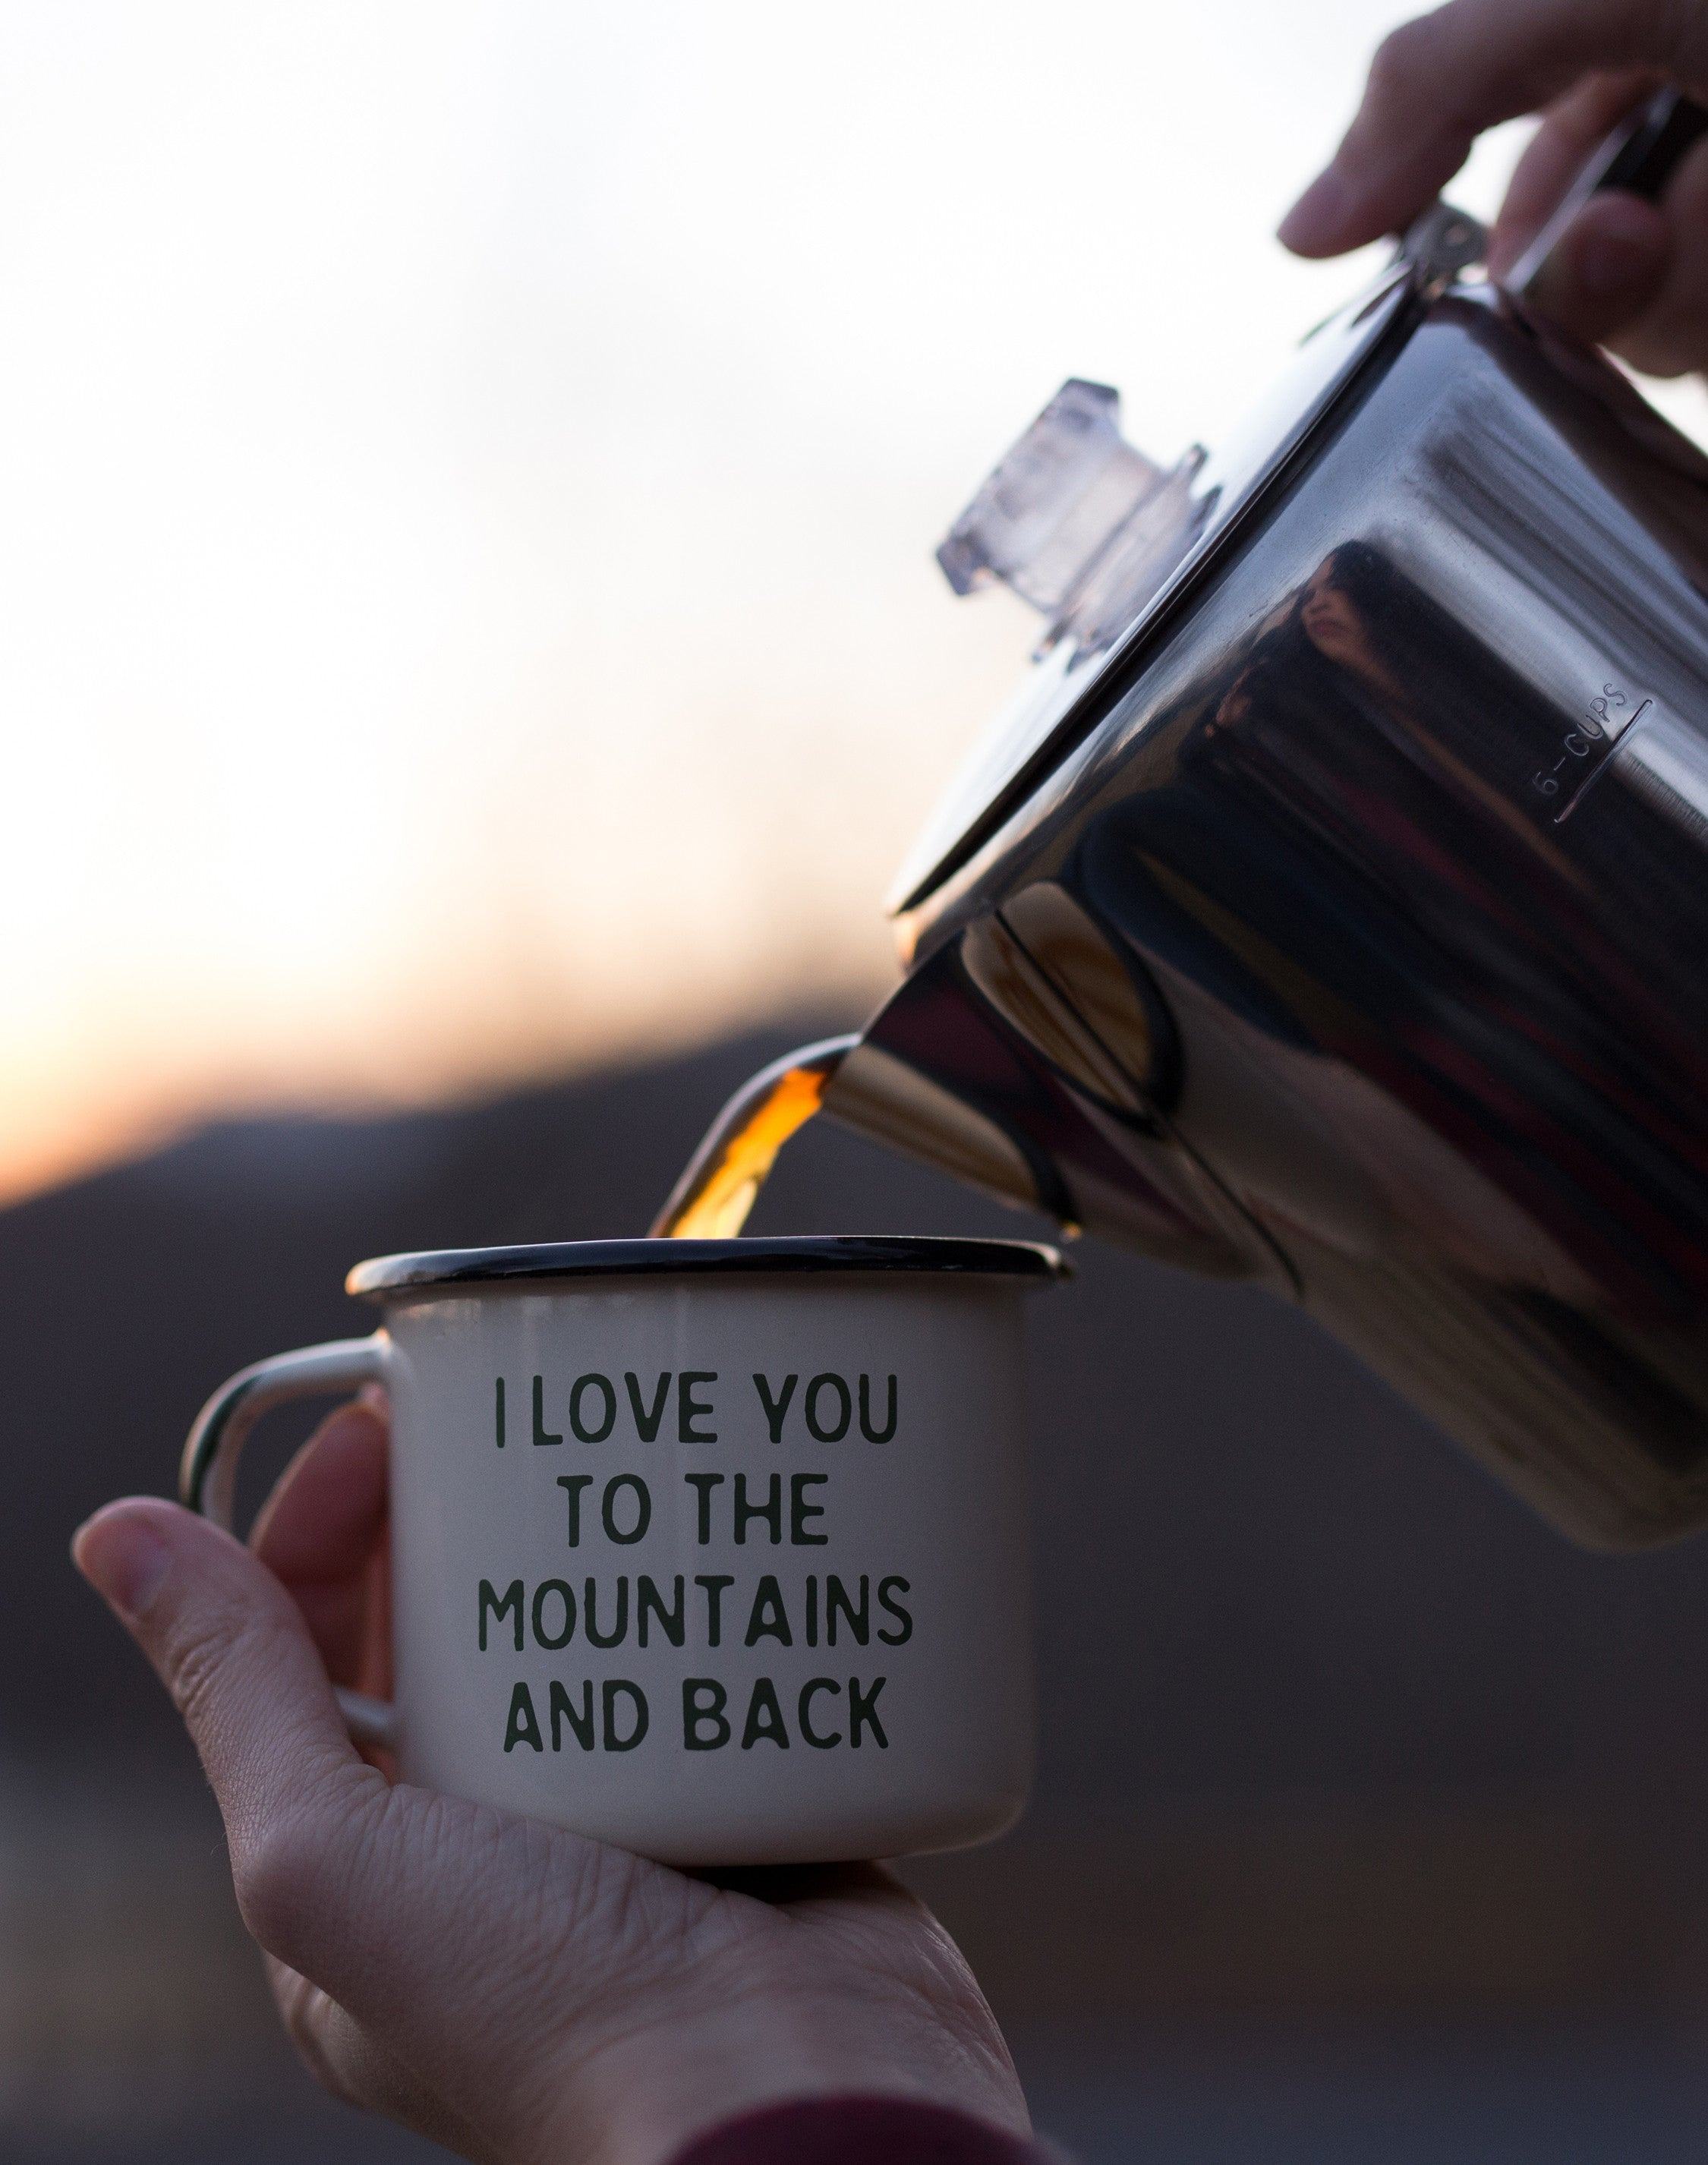 THE ORIGINAL MOUNTAIN LOVIN' CAMP MUG